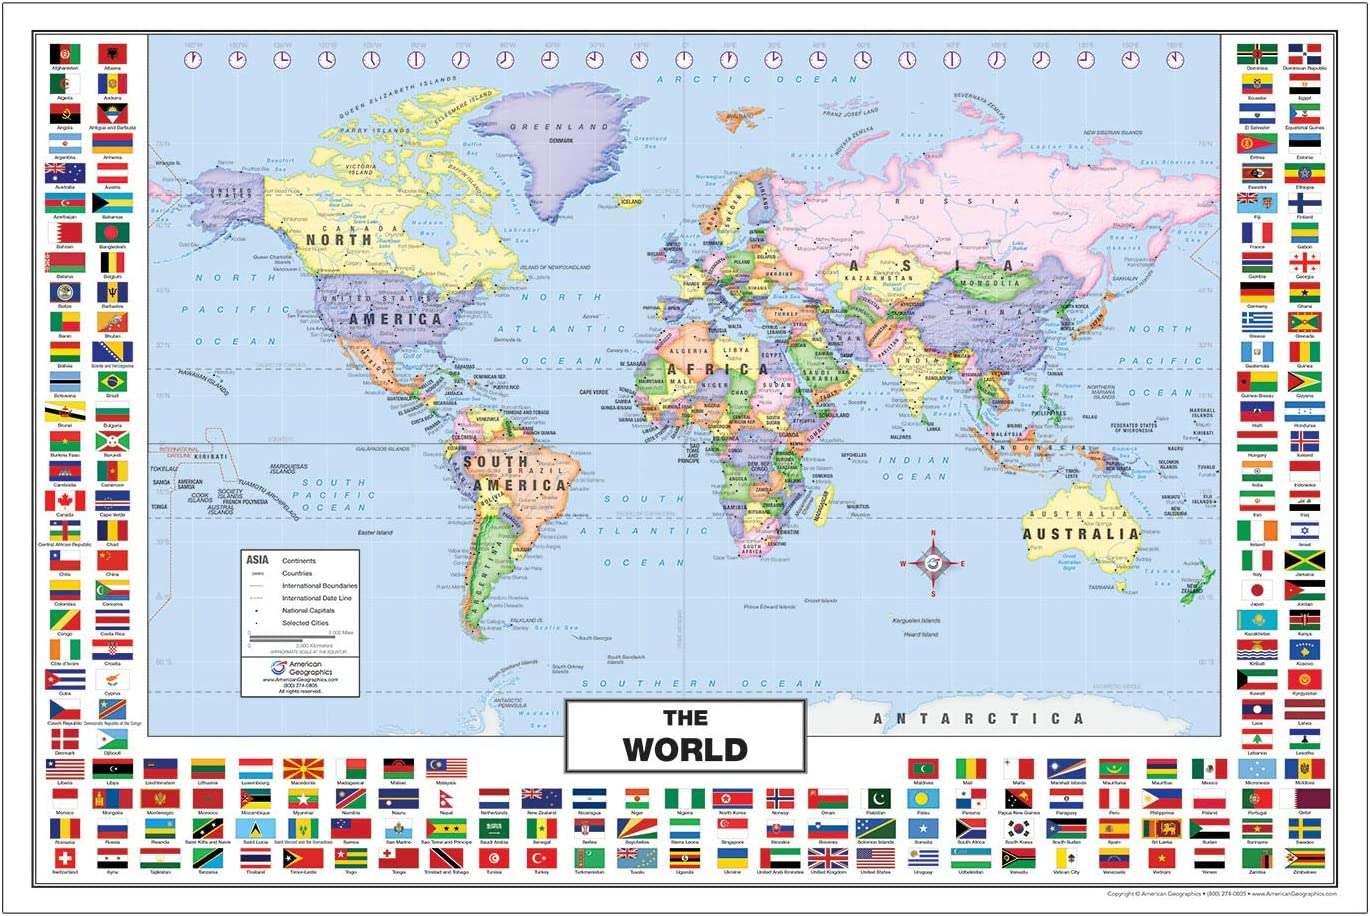 Map Of The World By Country.Amazon Com World Map With Country Flags For Kids 36 X 24